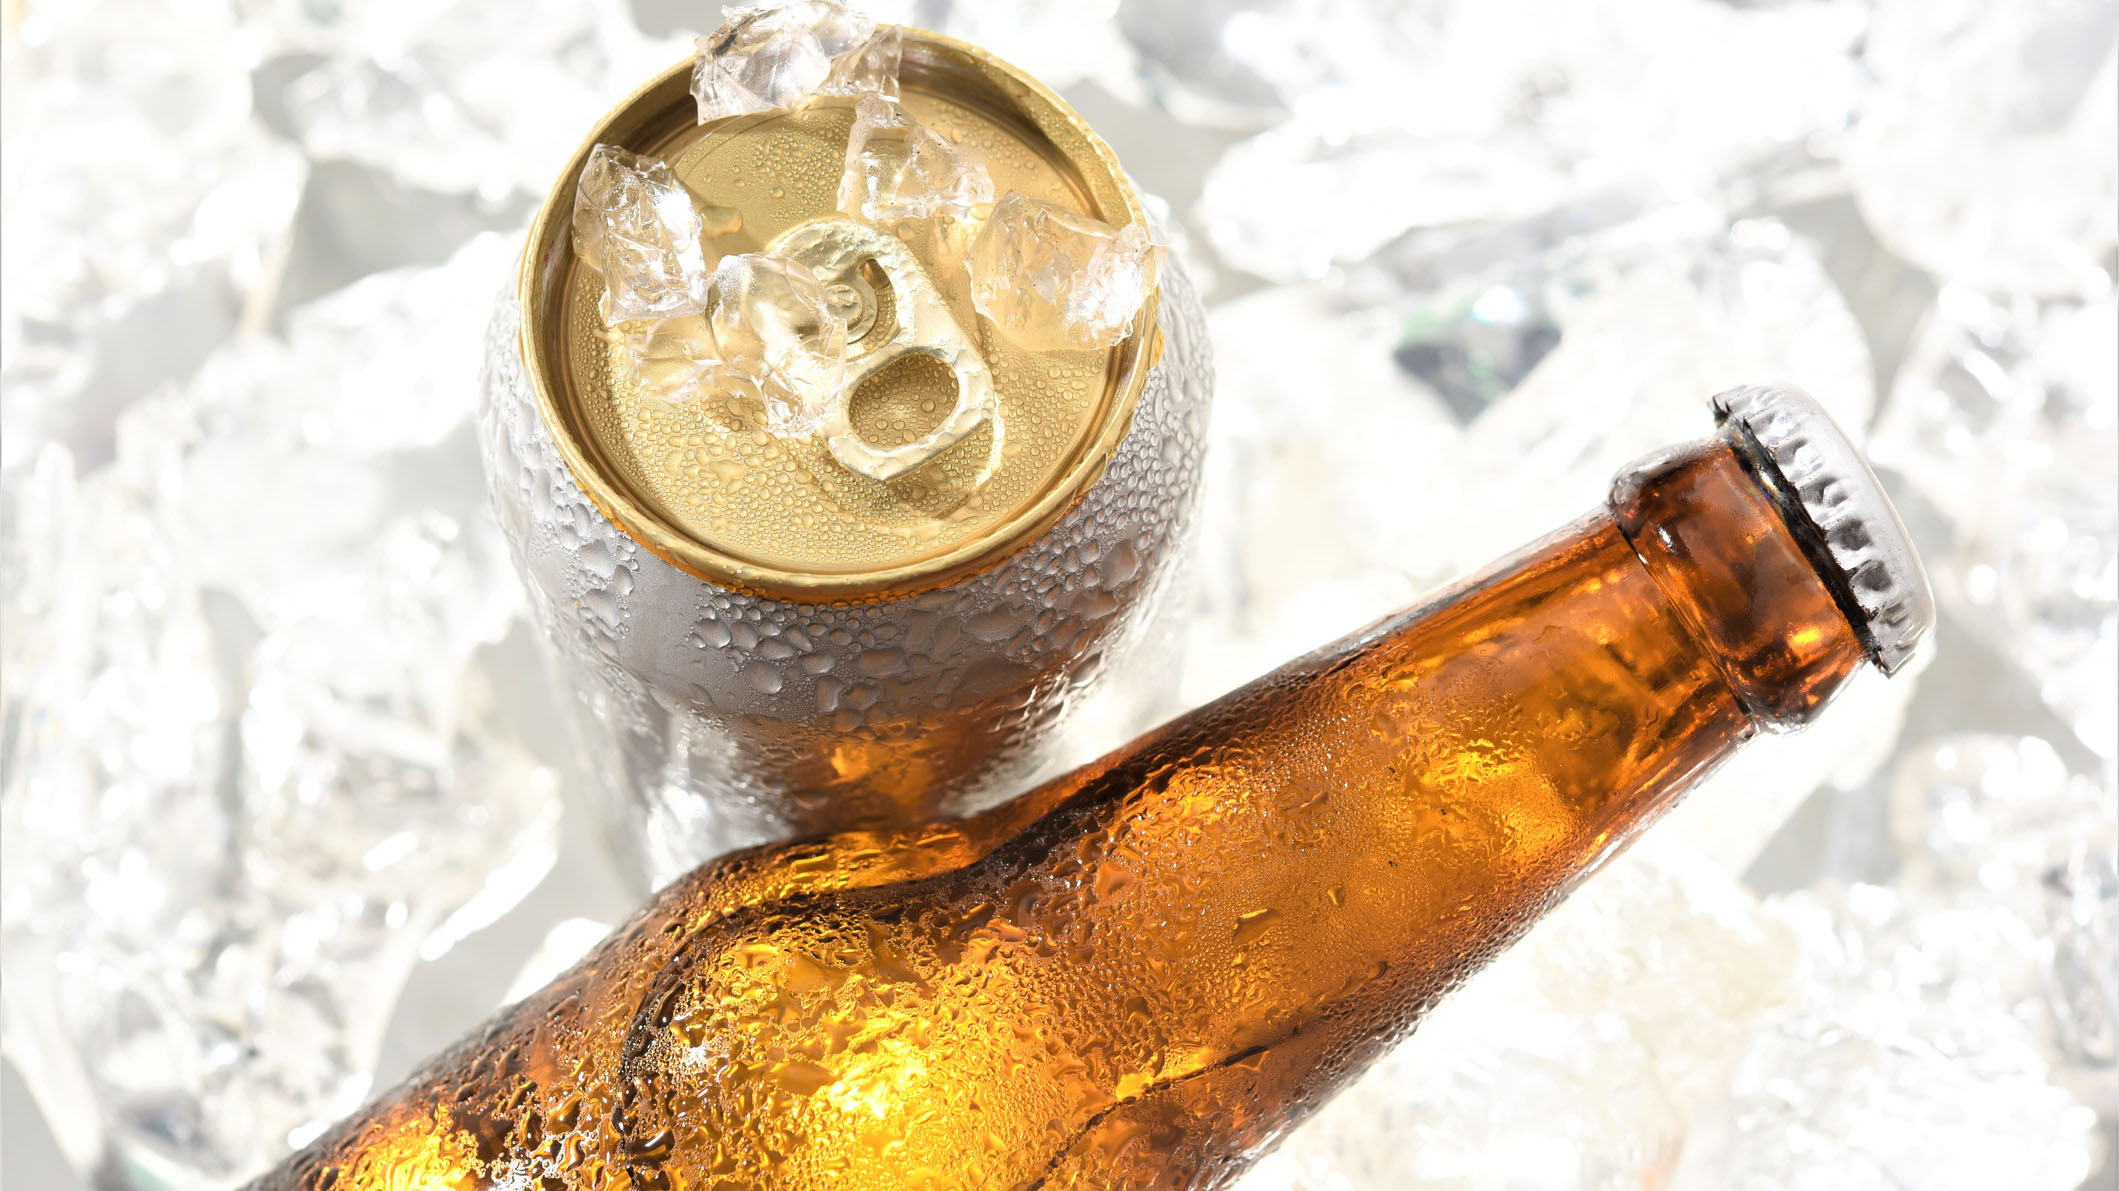 Westlake Legal Group beer-can-and-bottle Americans spend over a billion dollars on beer before the Super Bowl even starts Michael Hollan fox-news/news-events/super-bowl fox-news/food-drink/drinks/beer fox news fnc/food-drink fnc article 8cd8b72a-8e47-50ee-8917-3b70e2d1abc5